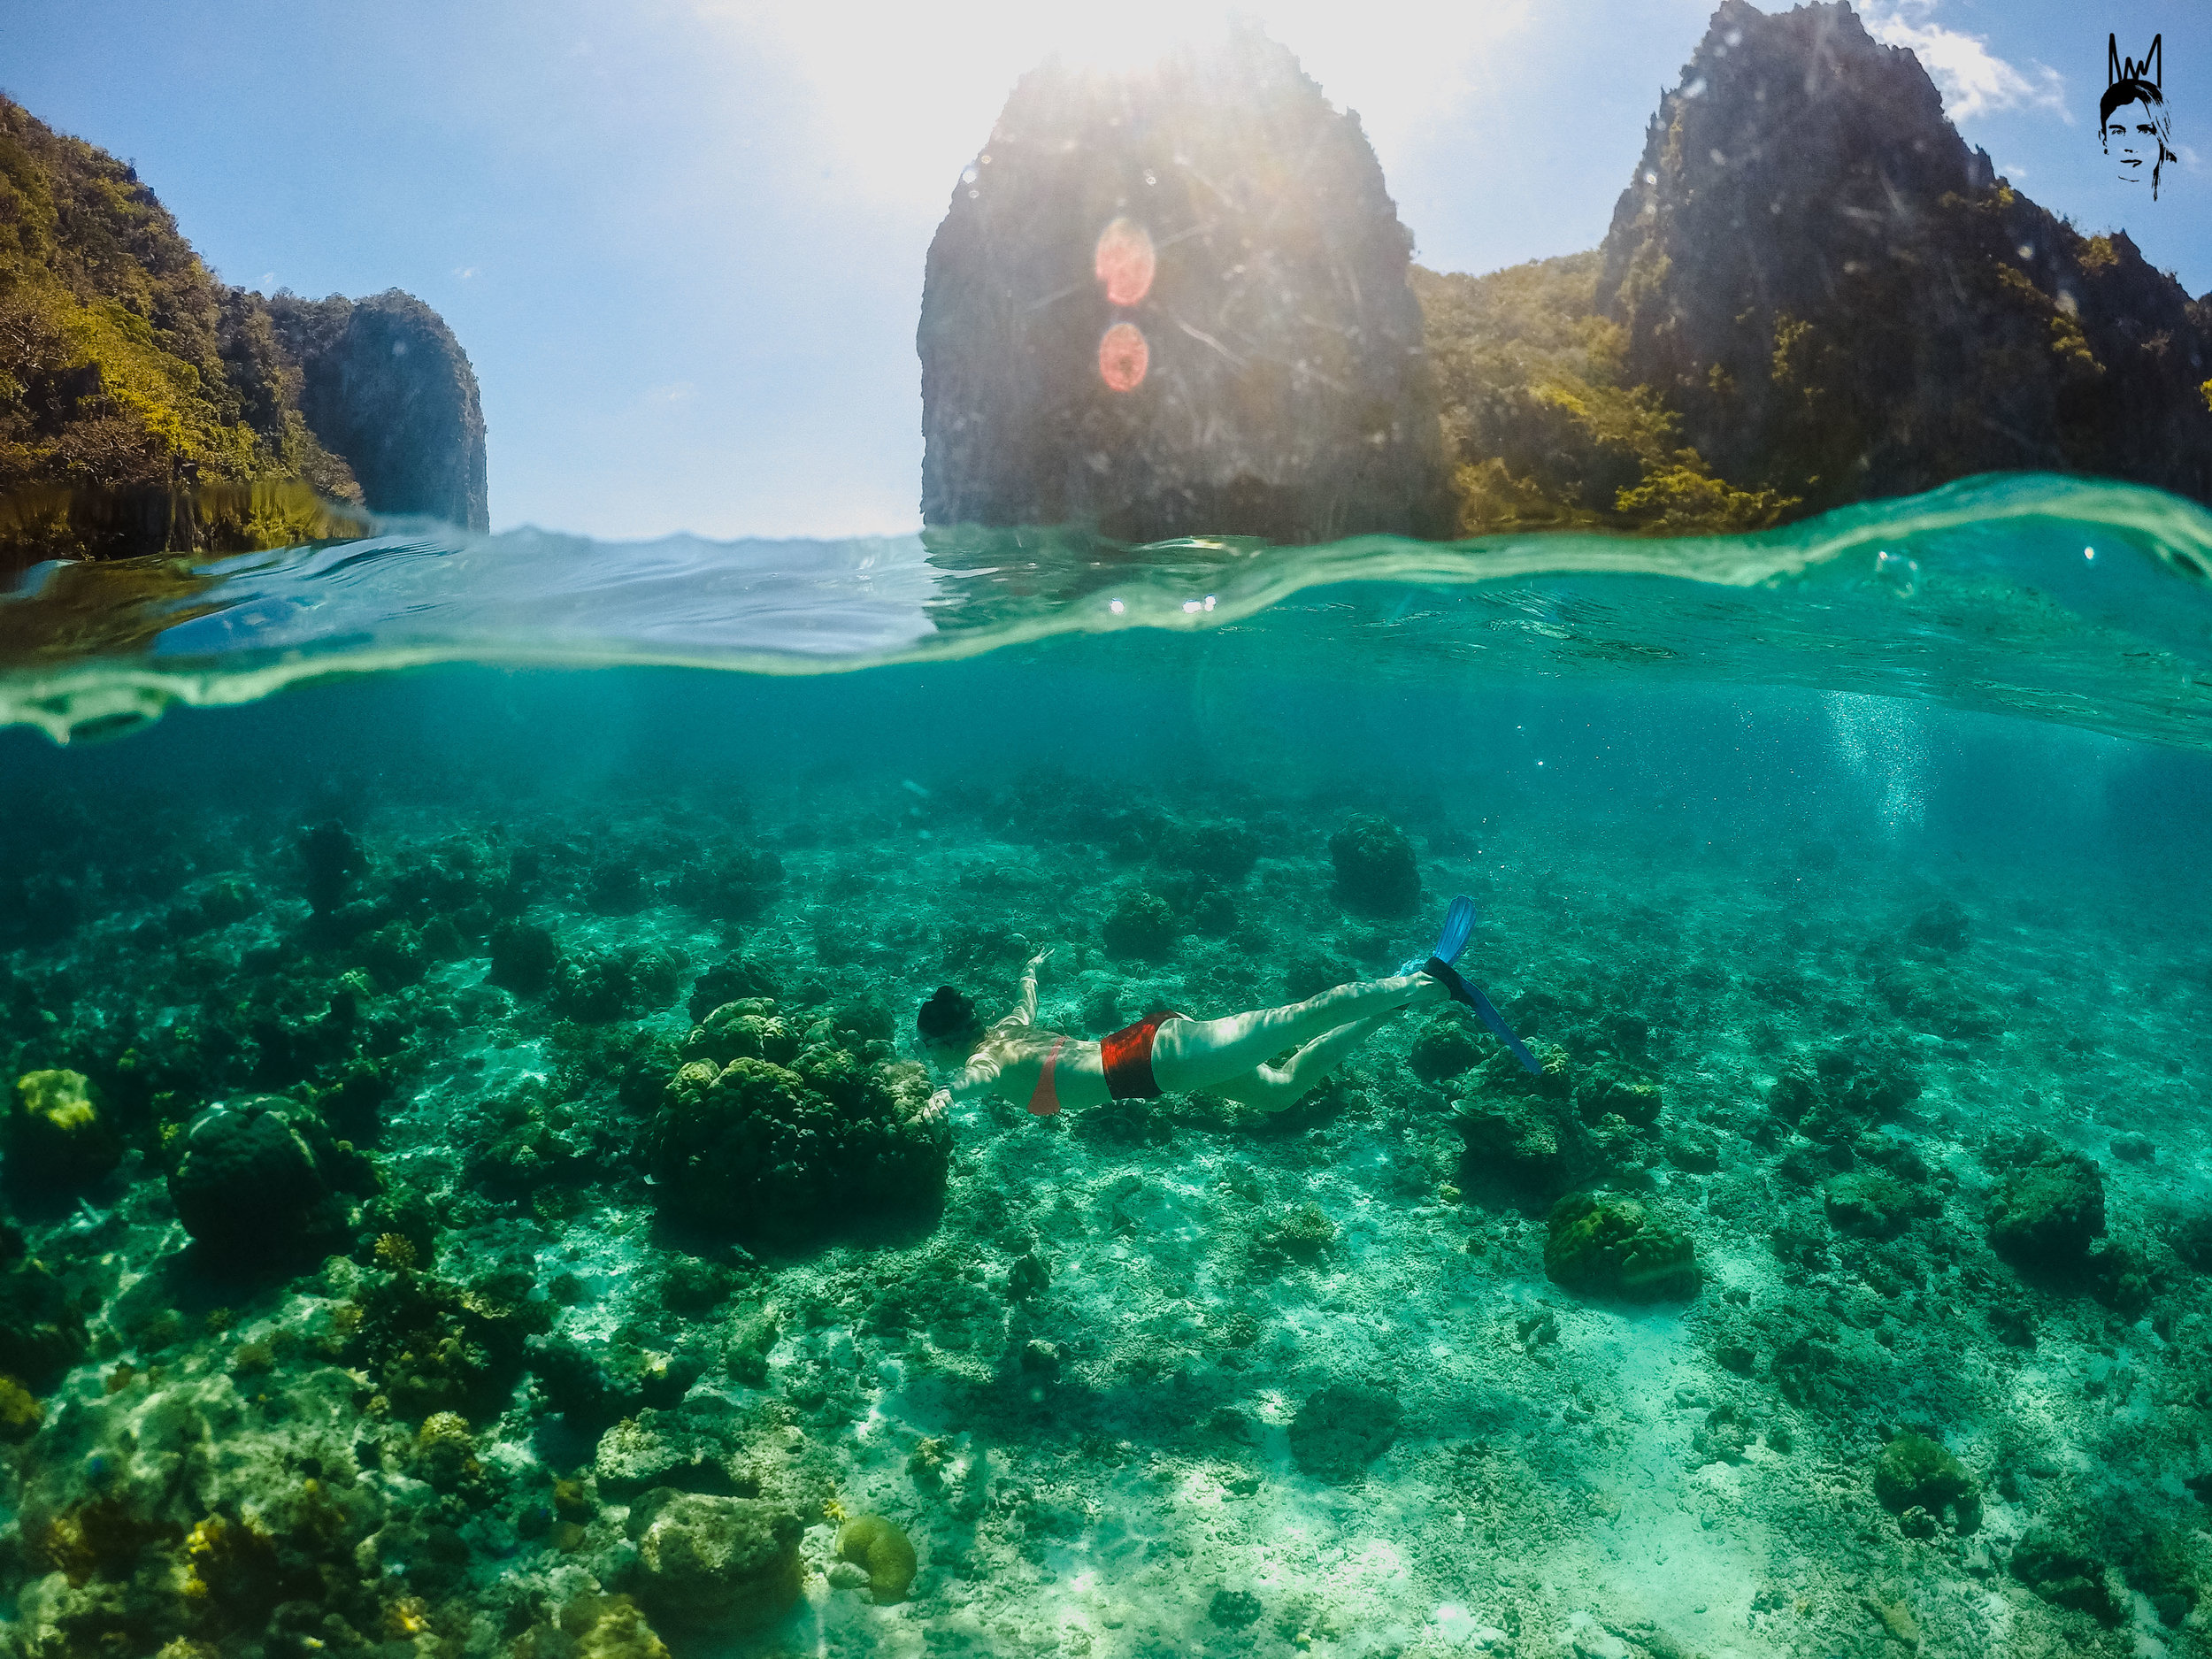 Snorkelling in the lush green waters